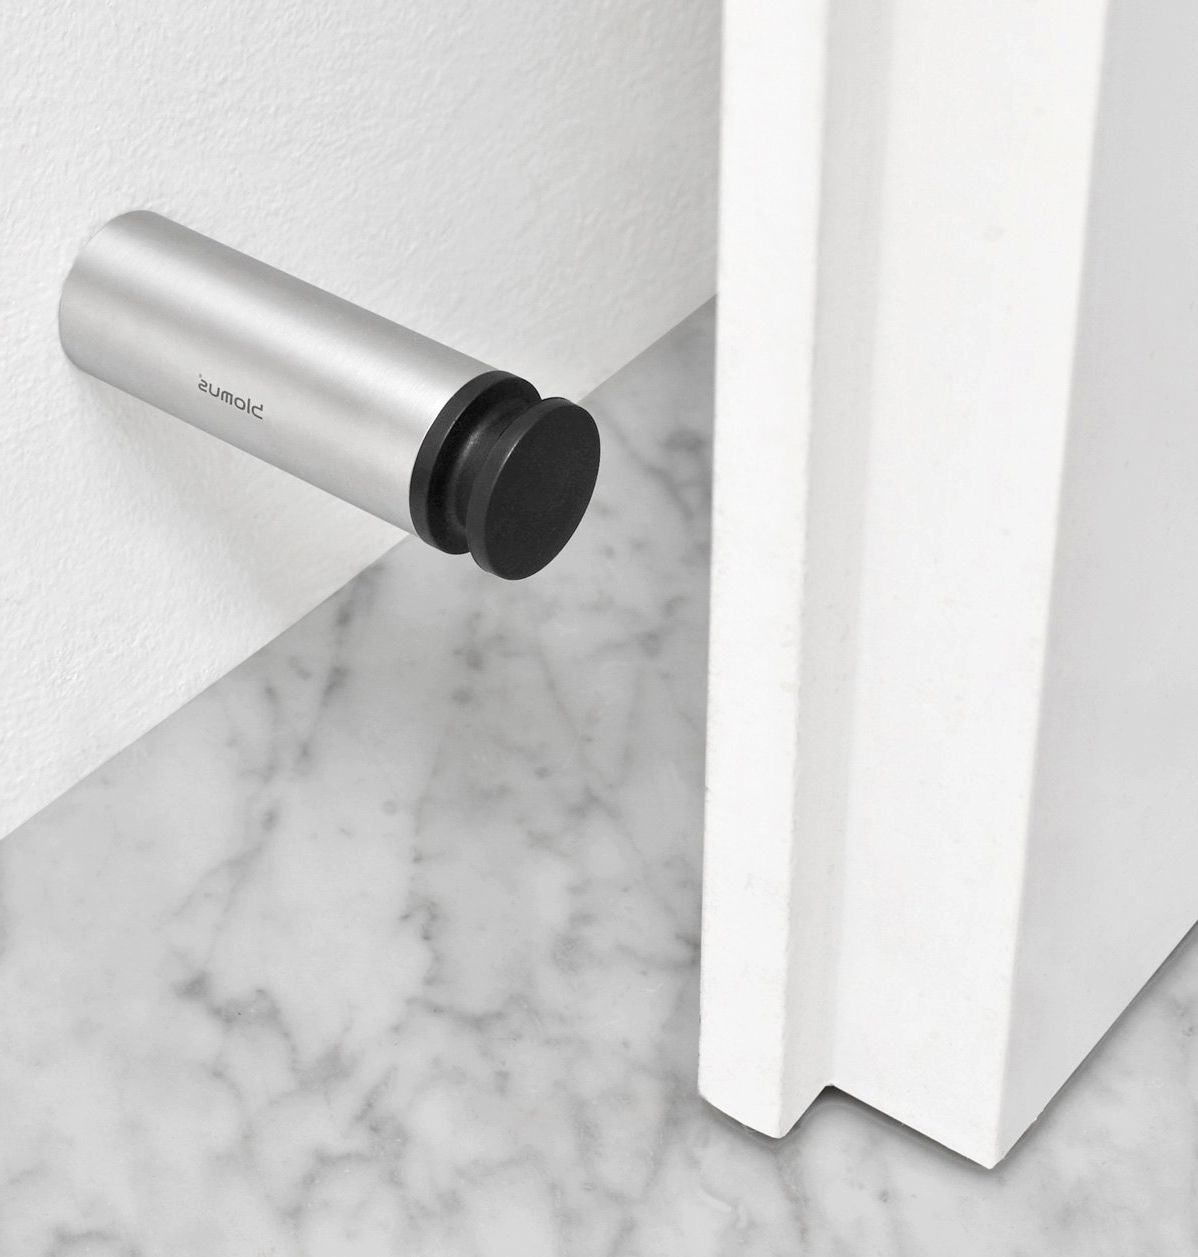 metal wall holder door stopper metal walls types of doors on wall types id=16013